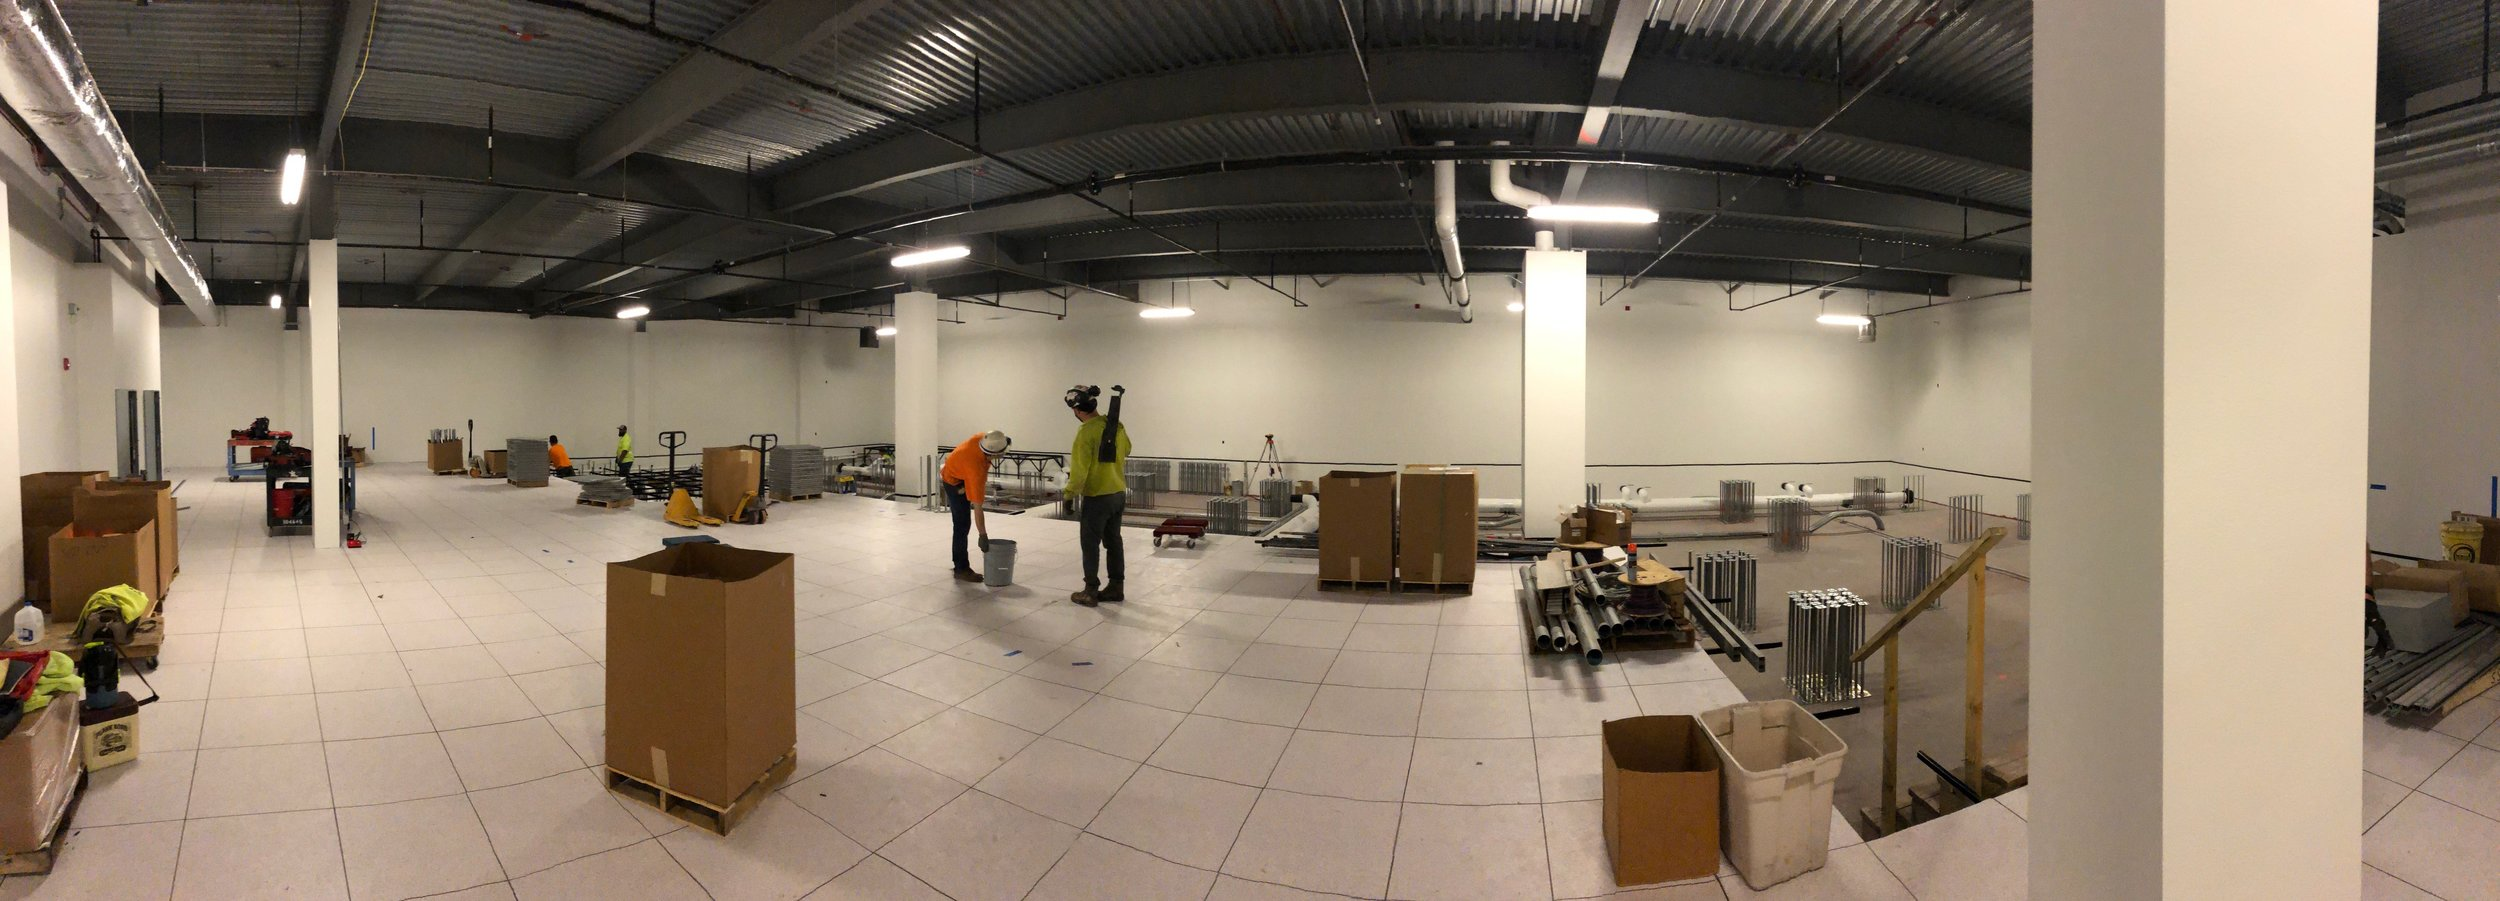 Week of May 27th - May 31st, 2019   The room is starting to come together. 3 feet of raised flooring is being added and should be completed the first week of June.